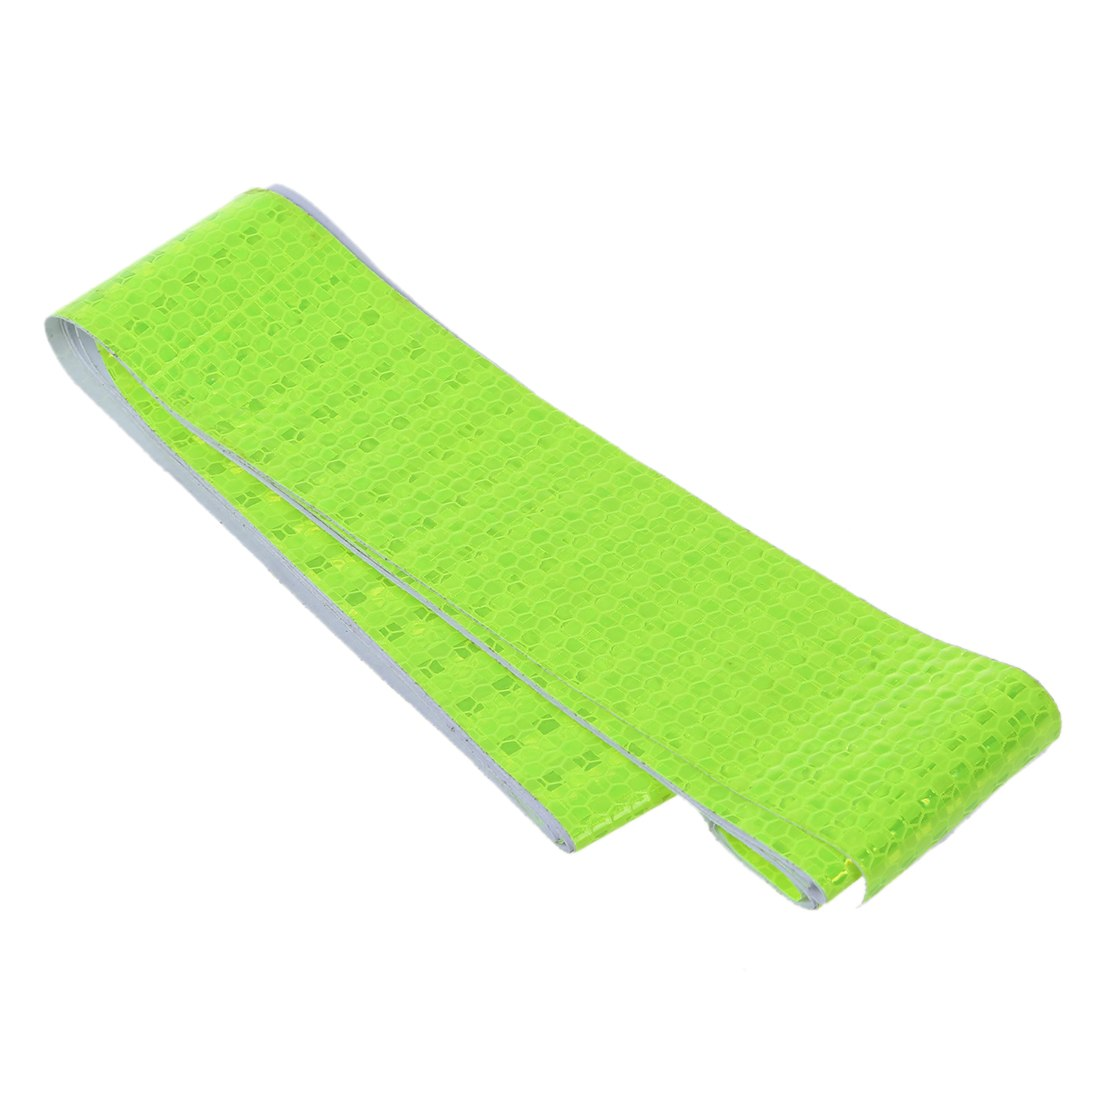 2 Pcs Of MOOL 5cm X 3m Fluorescence Yellow Night Reflective Safety Warning Conspicuity Tape